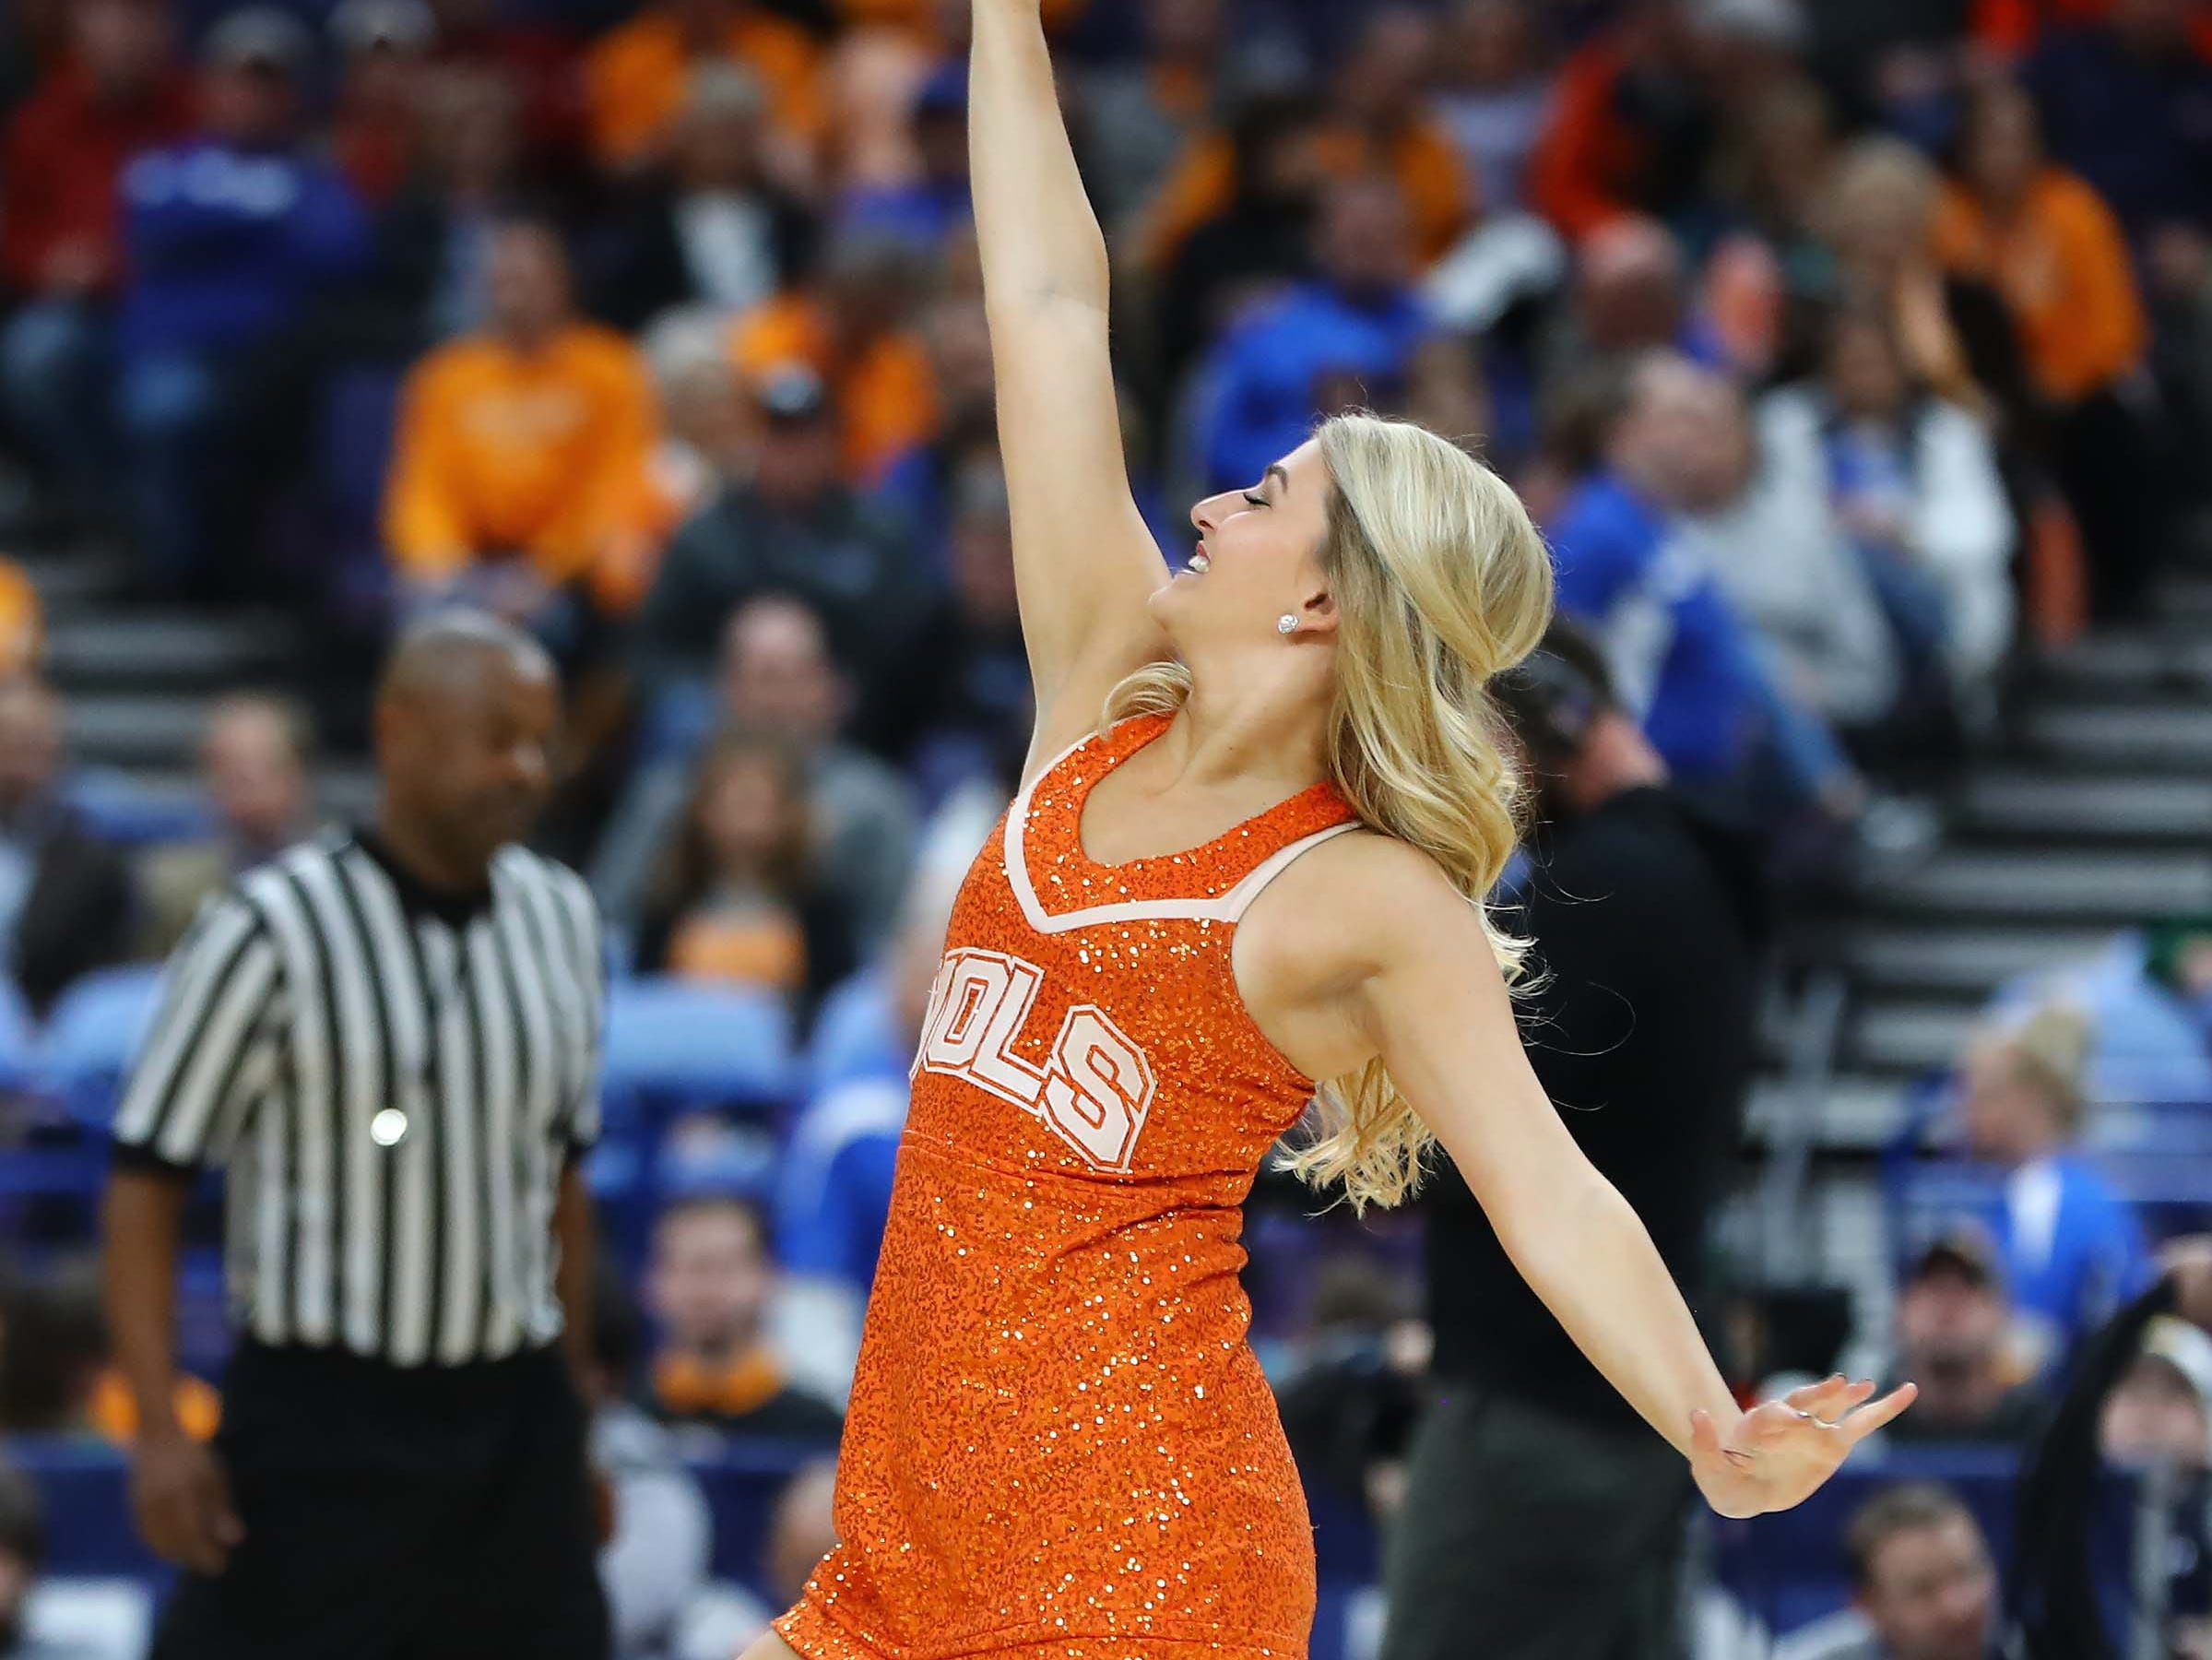 Mar 9, 2018; St. Louis, MO, USA; A member of the Tennessee Volunteers dance team performs during the first half of the quarterfinals of the SEC Conference Tournament against the Mississippi State Bulldogs at Scottrade Center.